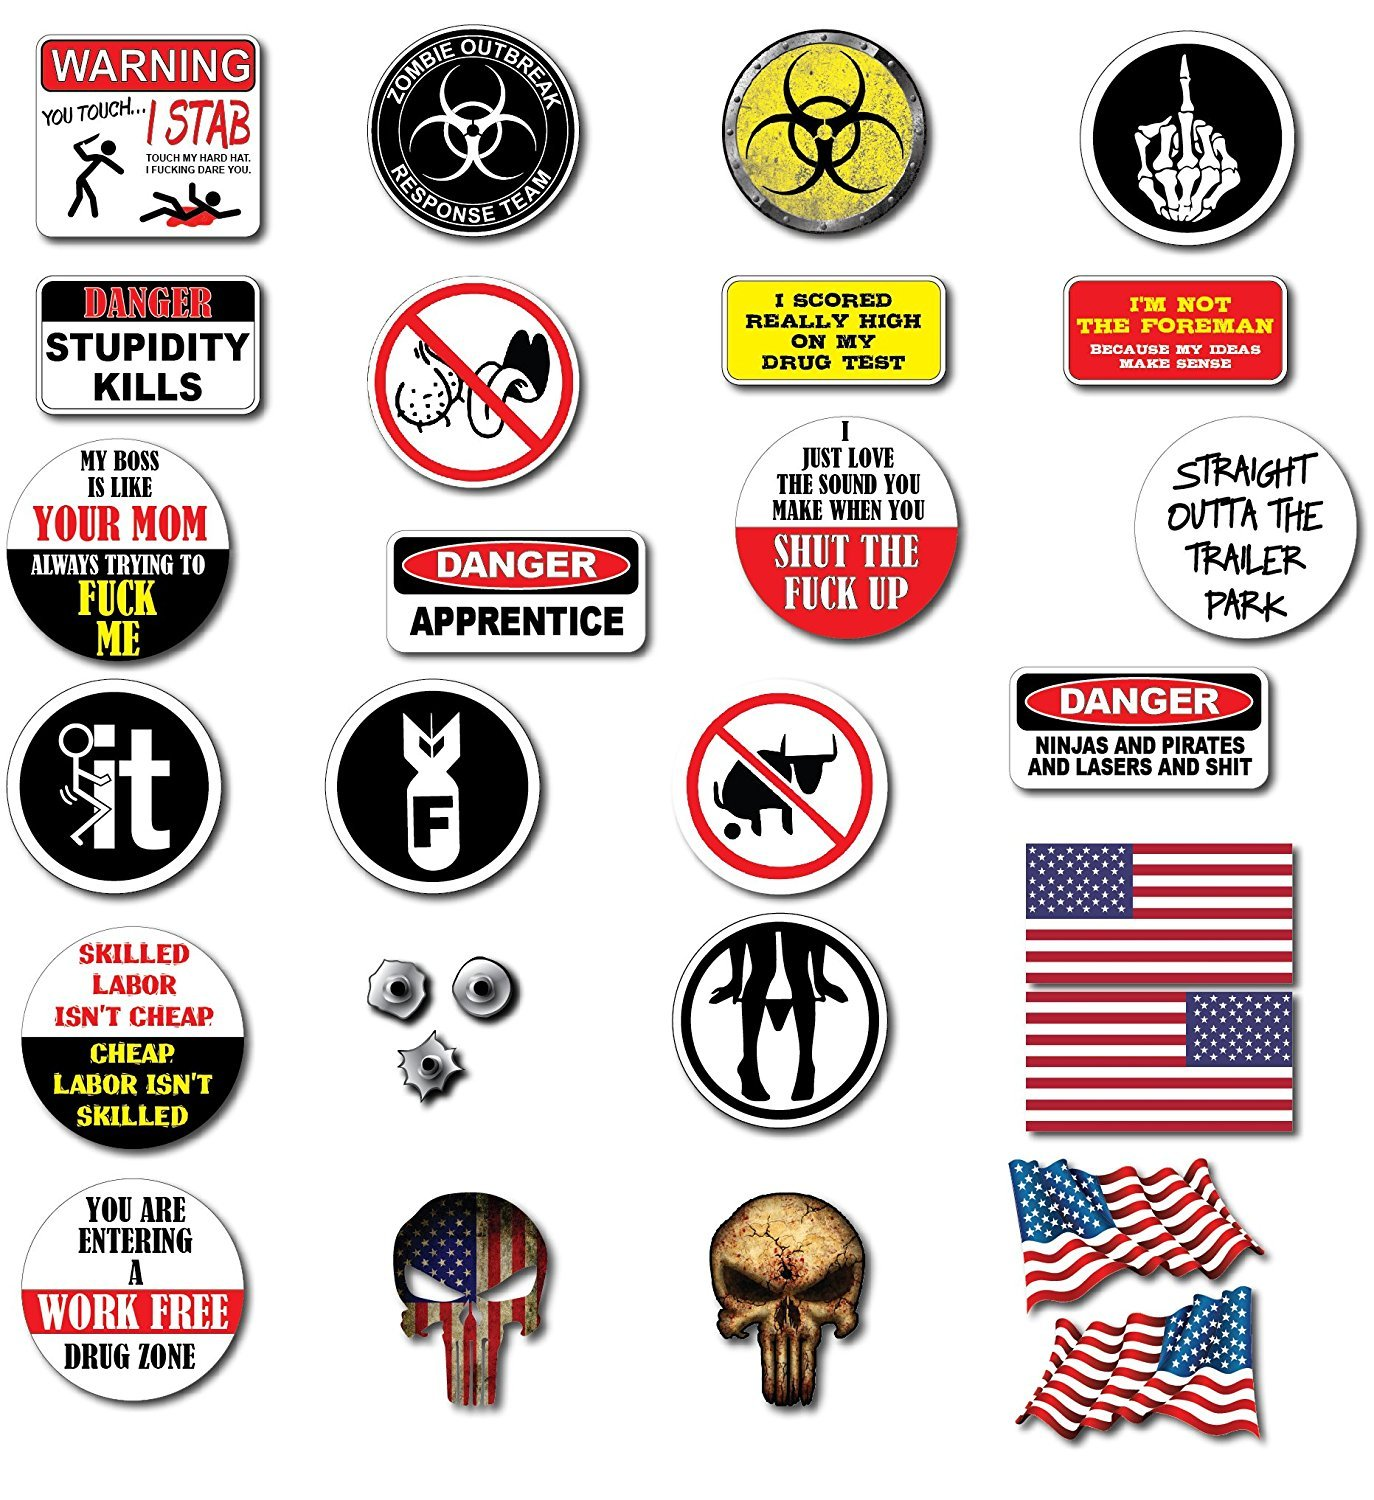 1 SET XXL UNION BEST OF (28pcs) Hard Hat, Tool Box Stickers | 100% PVC ! Funny decals for Construction, Electrician, Union, OSHA, Oilfield, Military, Fire Crew, Mechanics | Display your American Flag! by Linni's Vinyl Banners (Image #1)